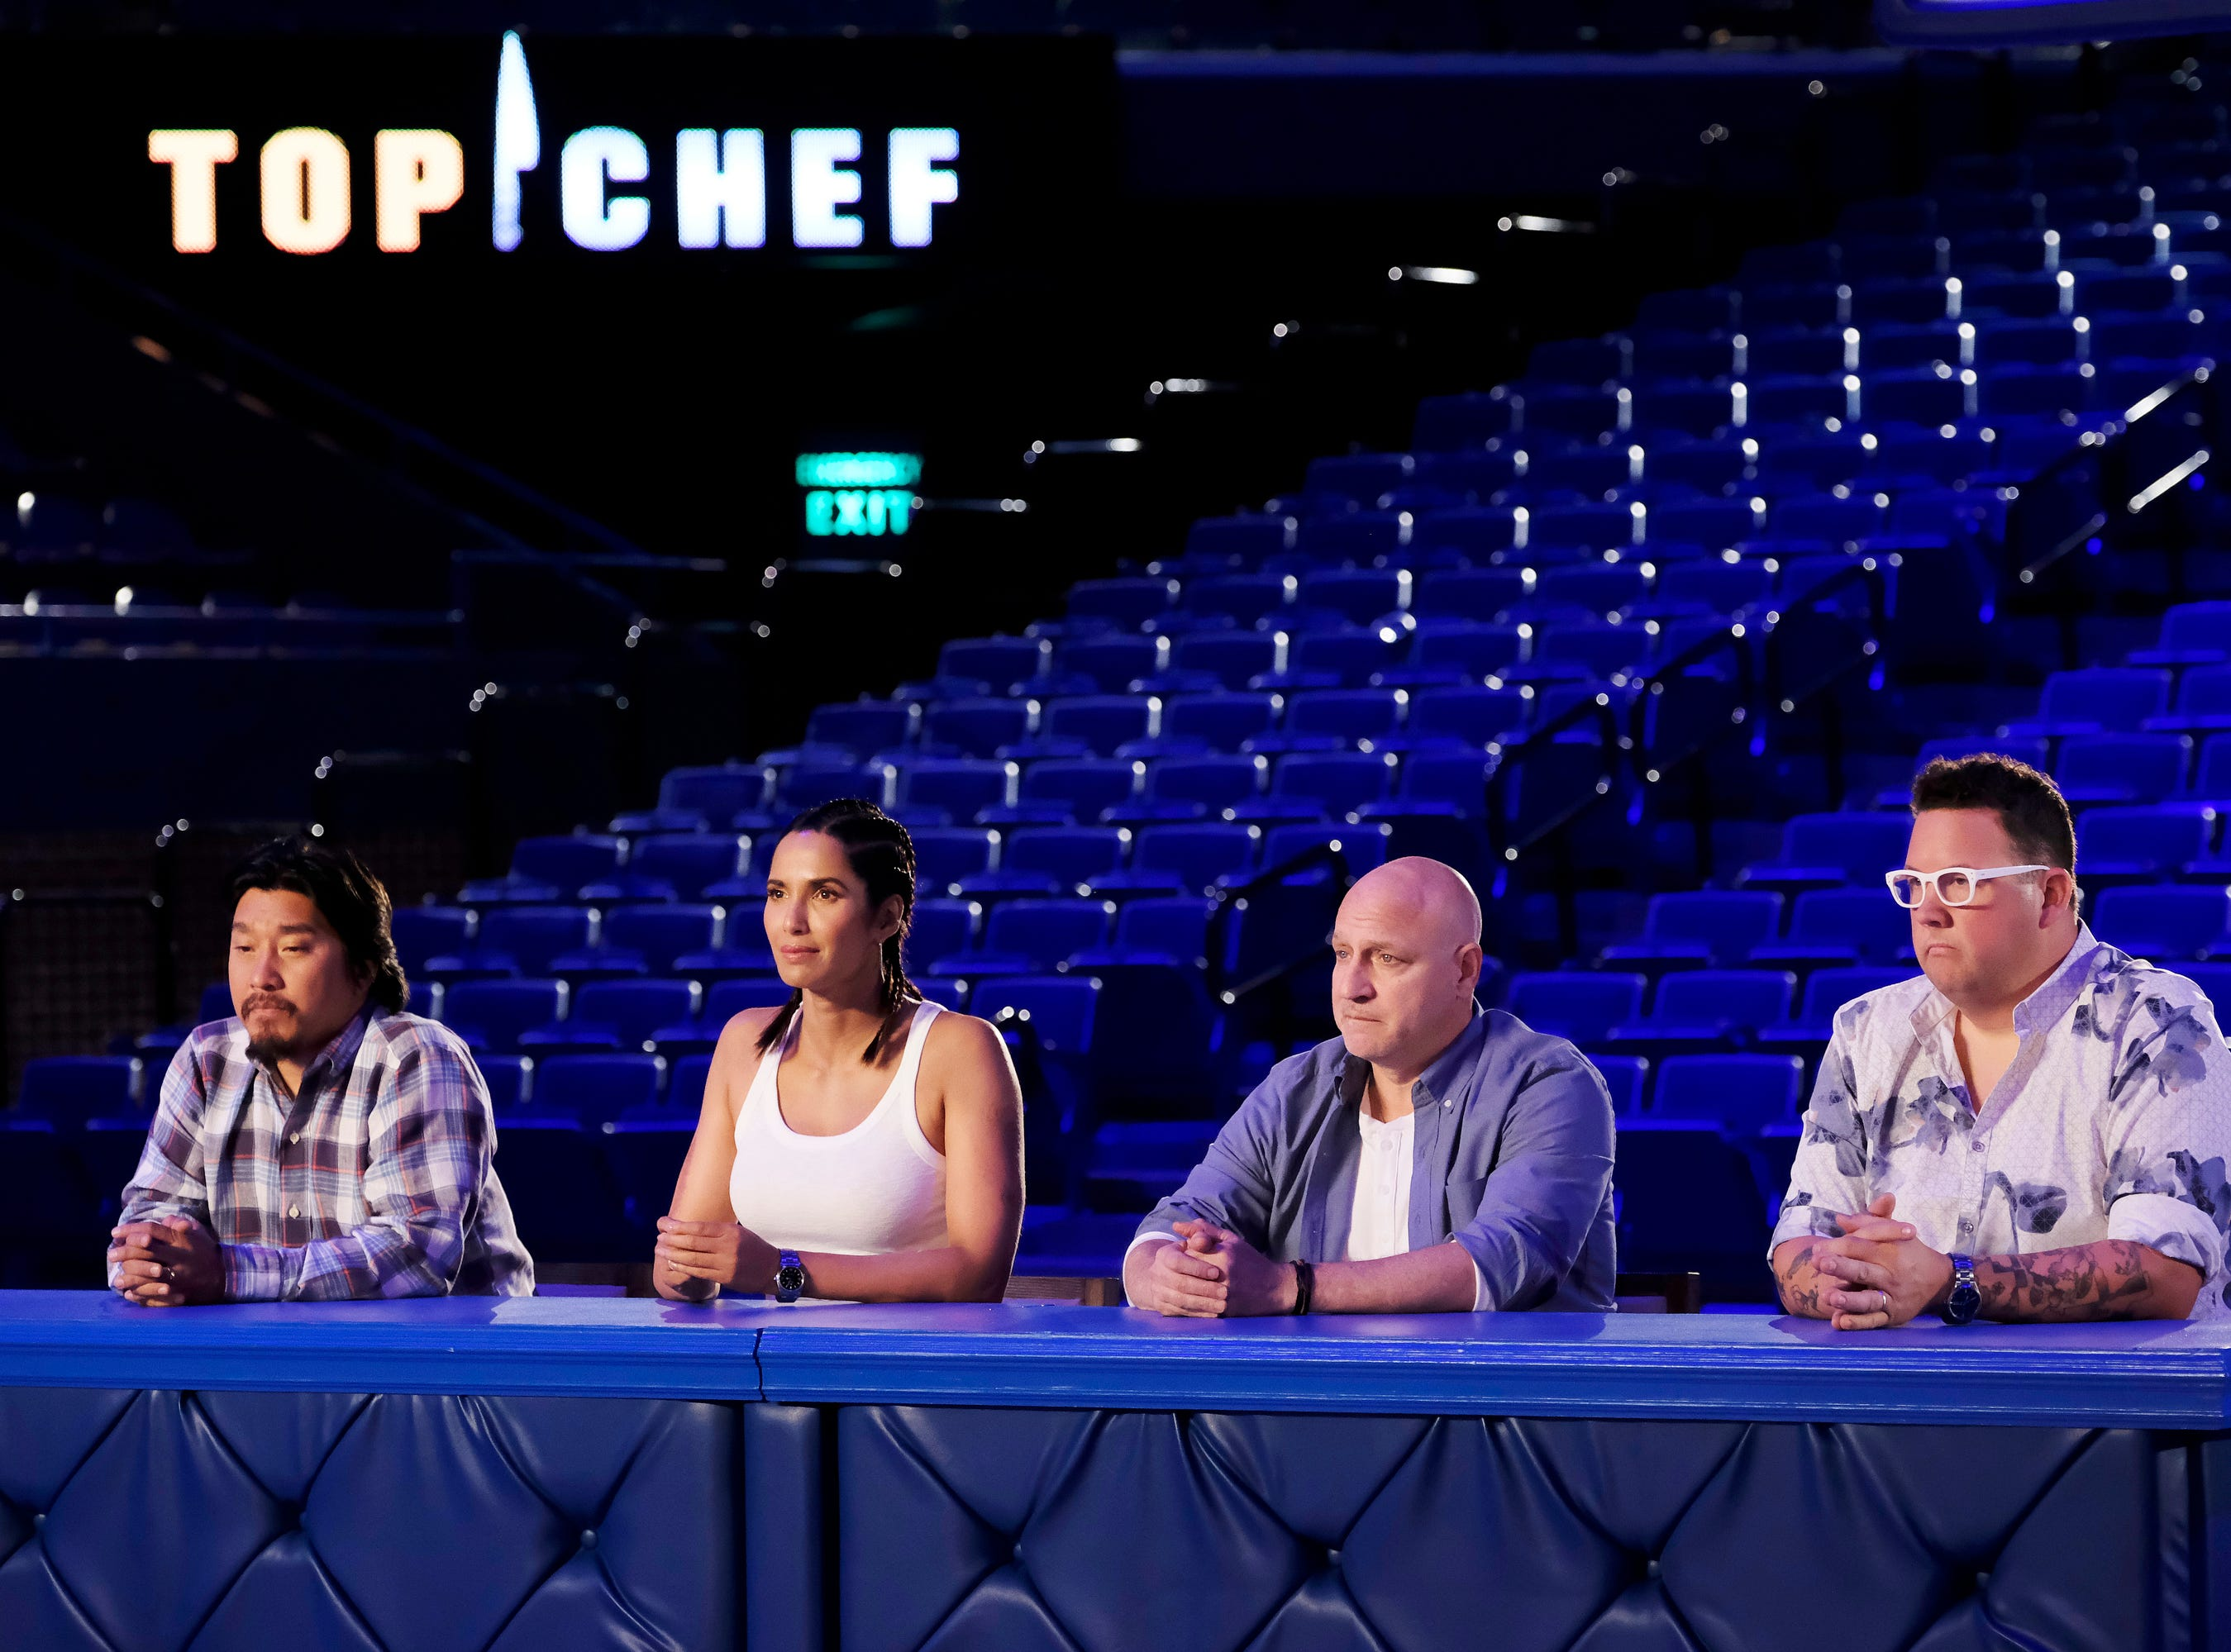 (From left to right): Louisville chef and 'Top Chef' alum Ed Lee, host Padma Lakshmi and judges Tom Colicchio and Graham Elliot on episode 10 of Bravo's 'Top Chef: Kentucky' season.